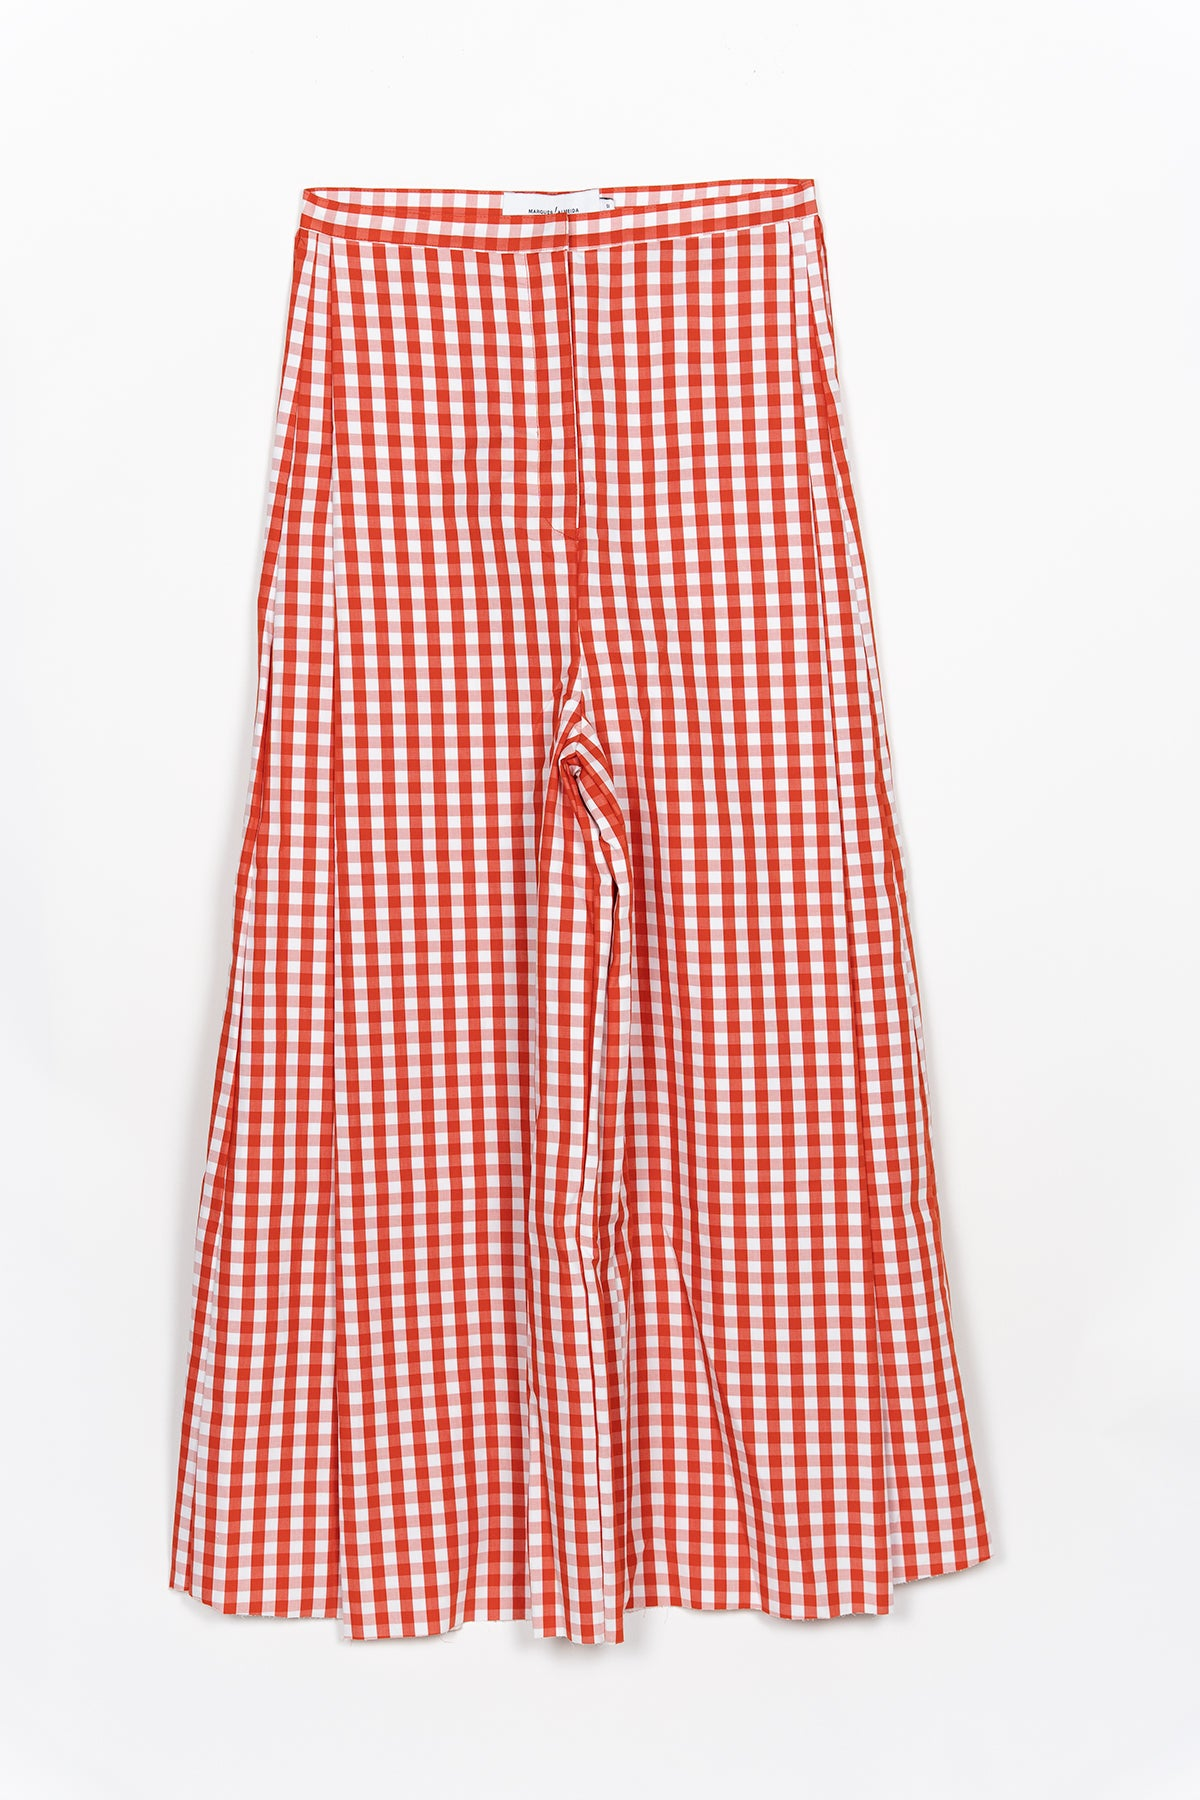 ORANGE GINGHAM WIDE LEG TROUSER